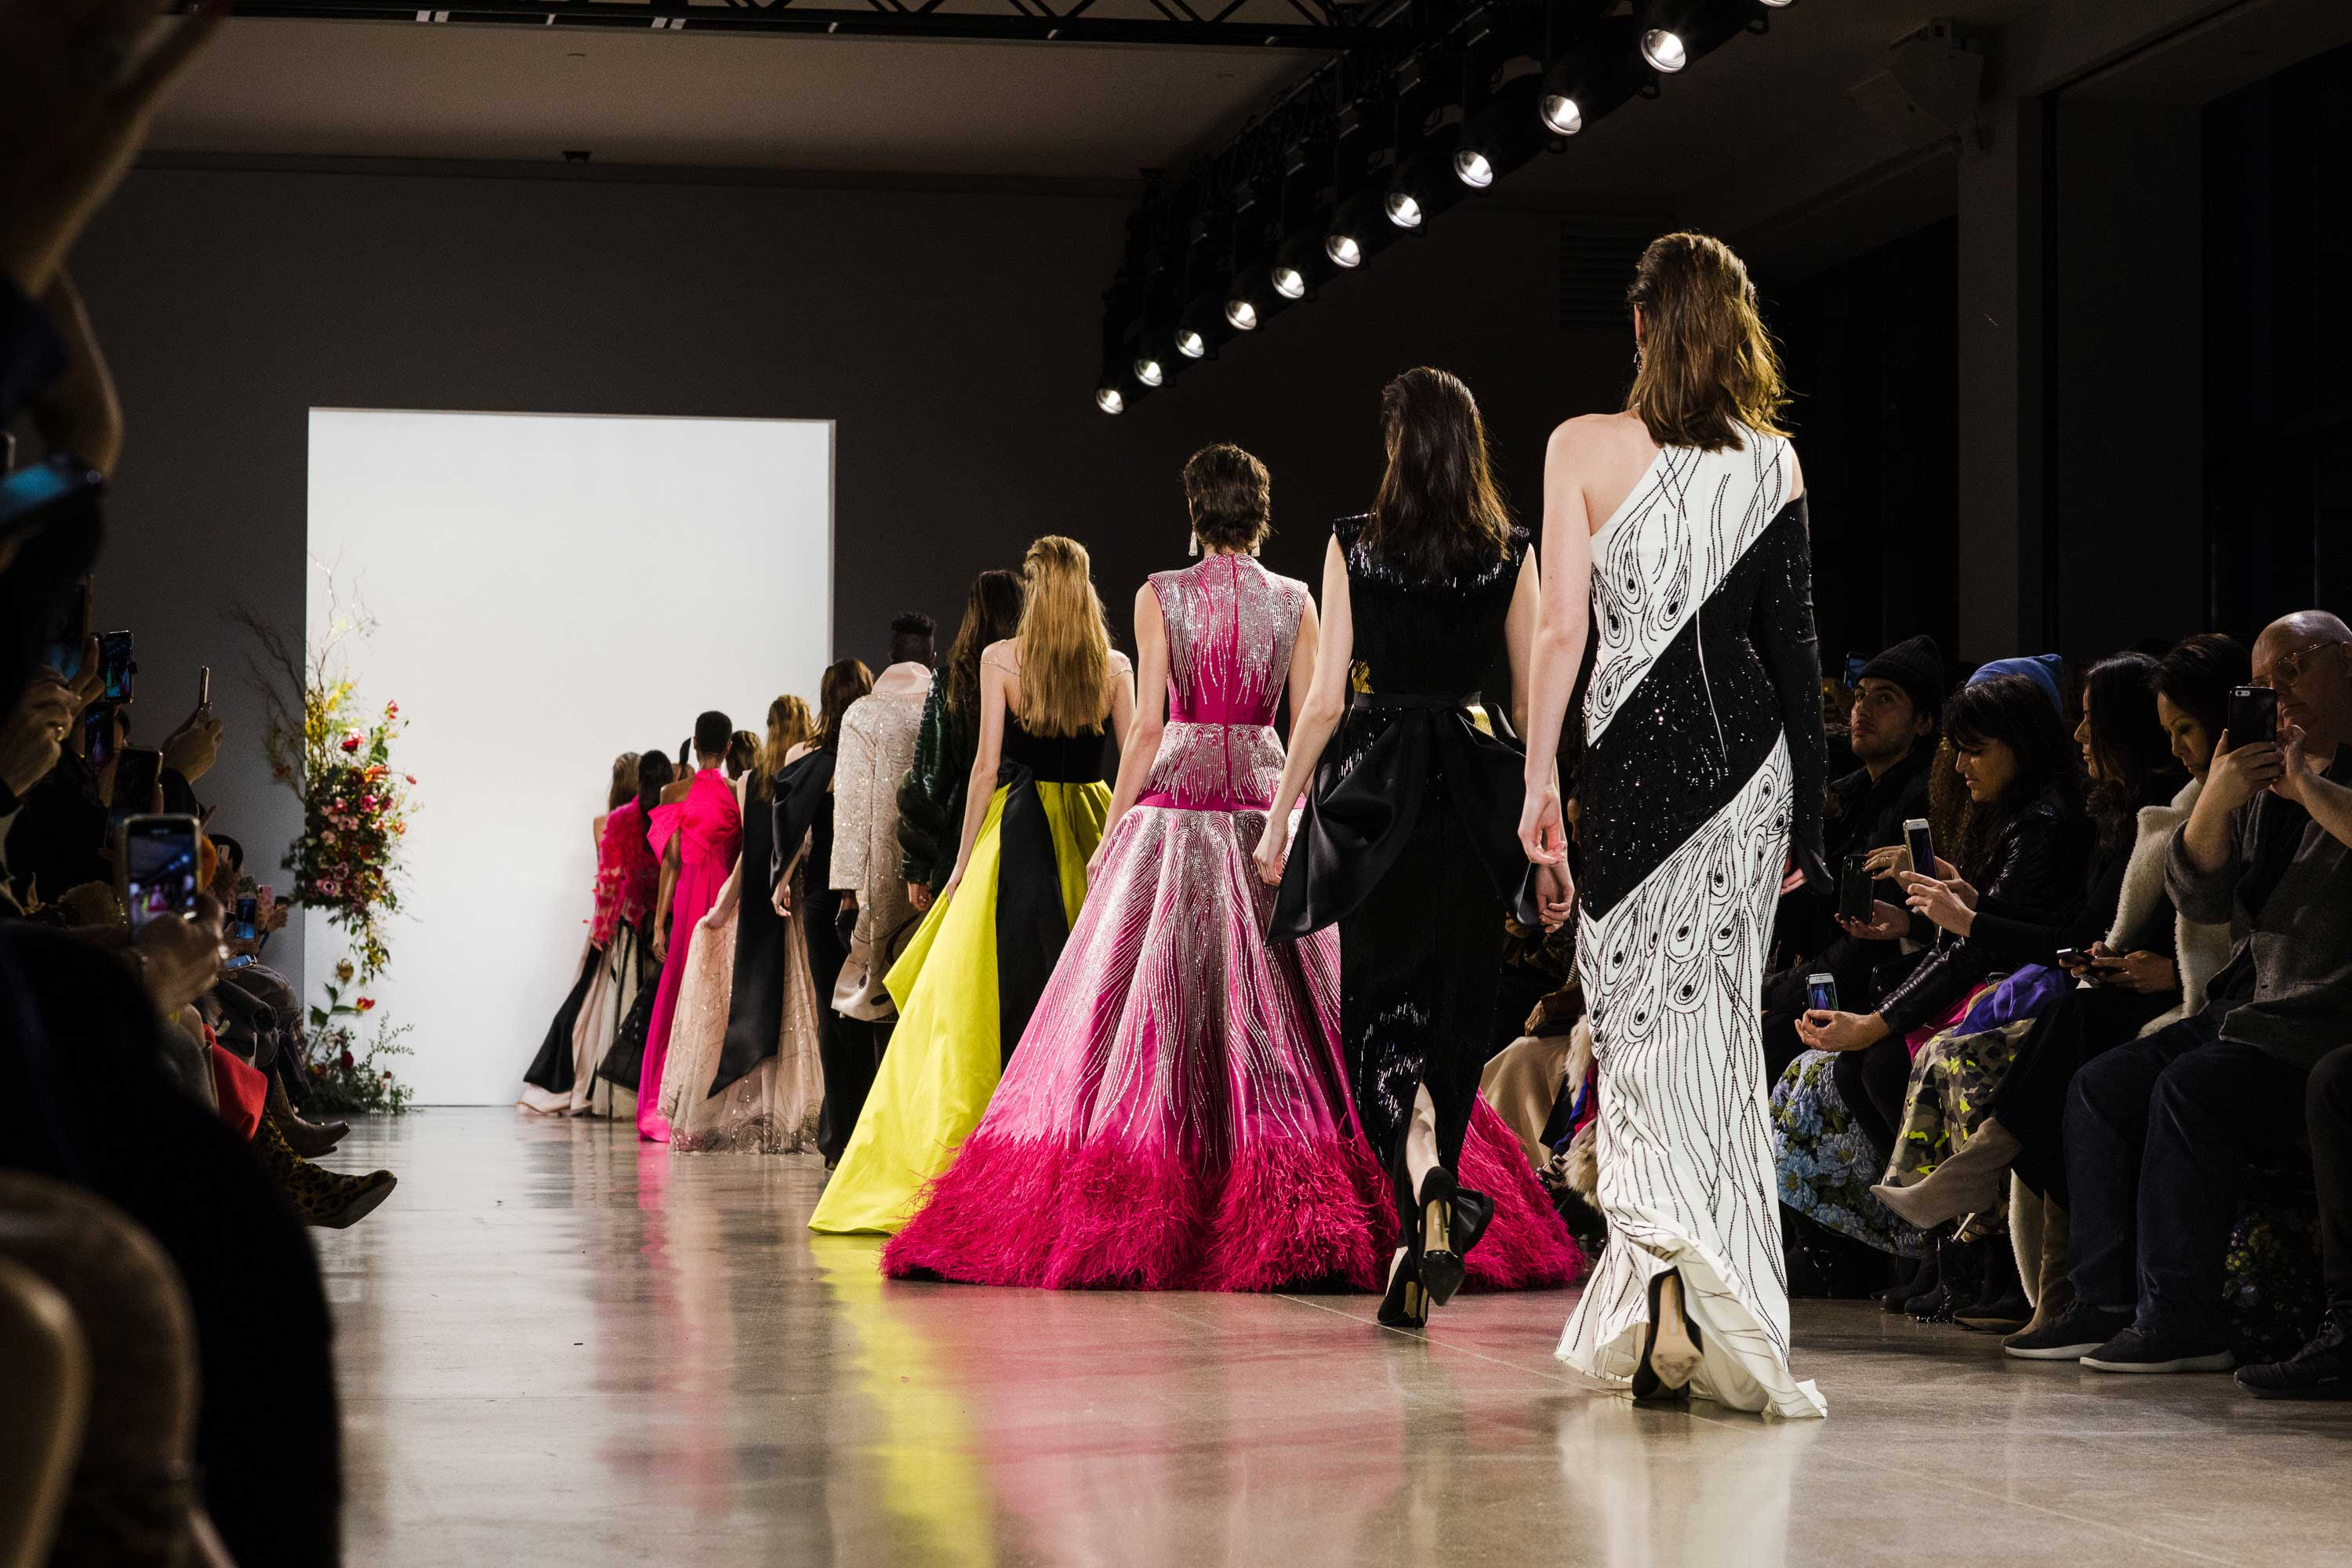 NYFW: The Shows - Win the VIP Treatment at NYFW, thanks to BMW